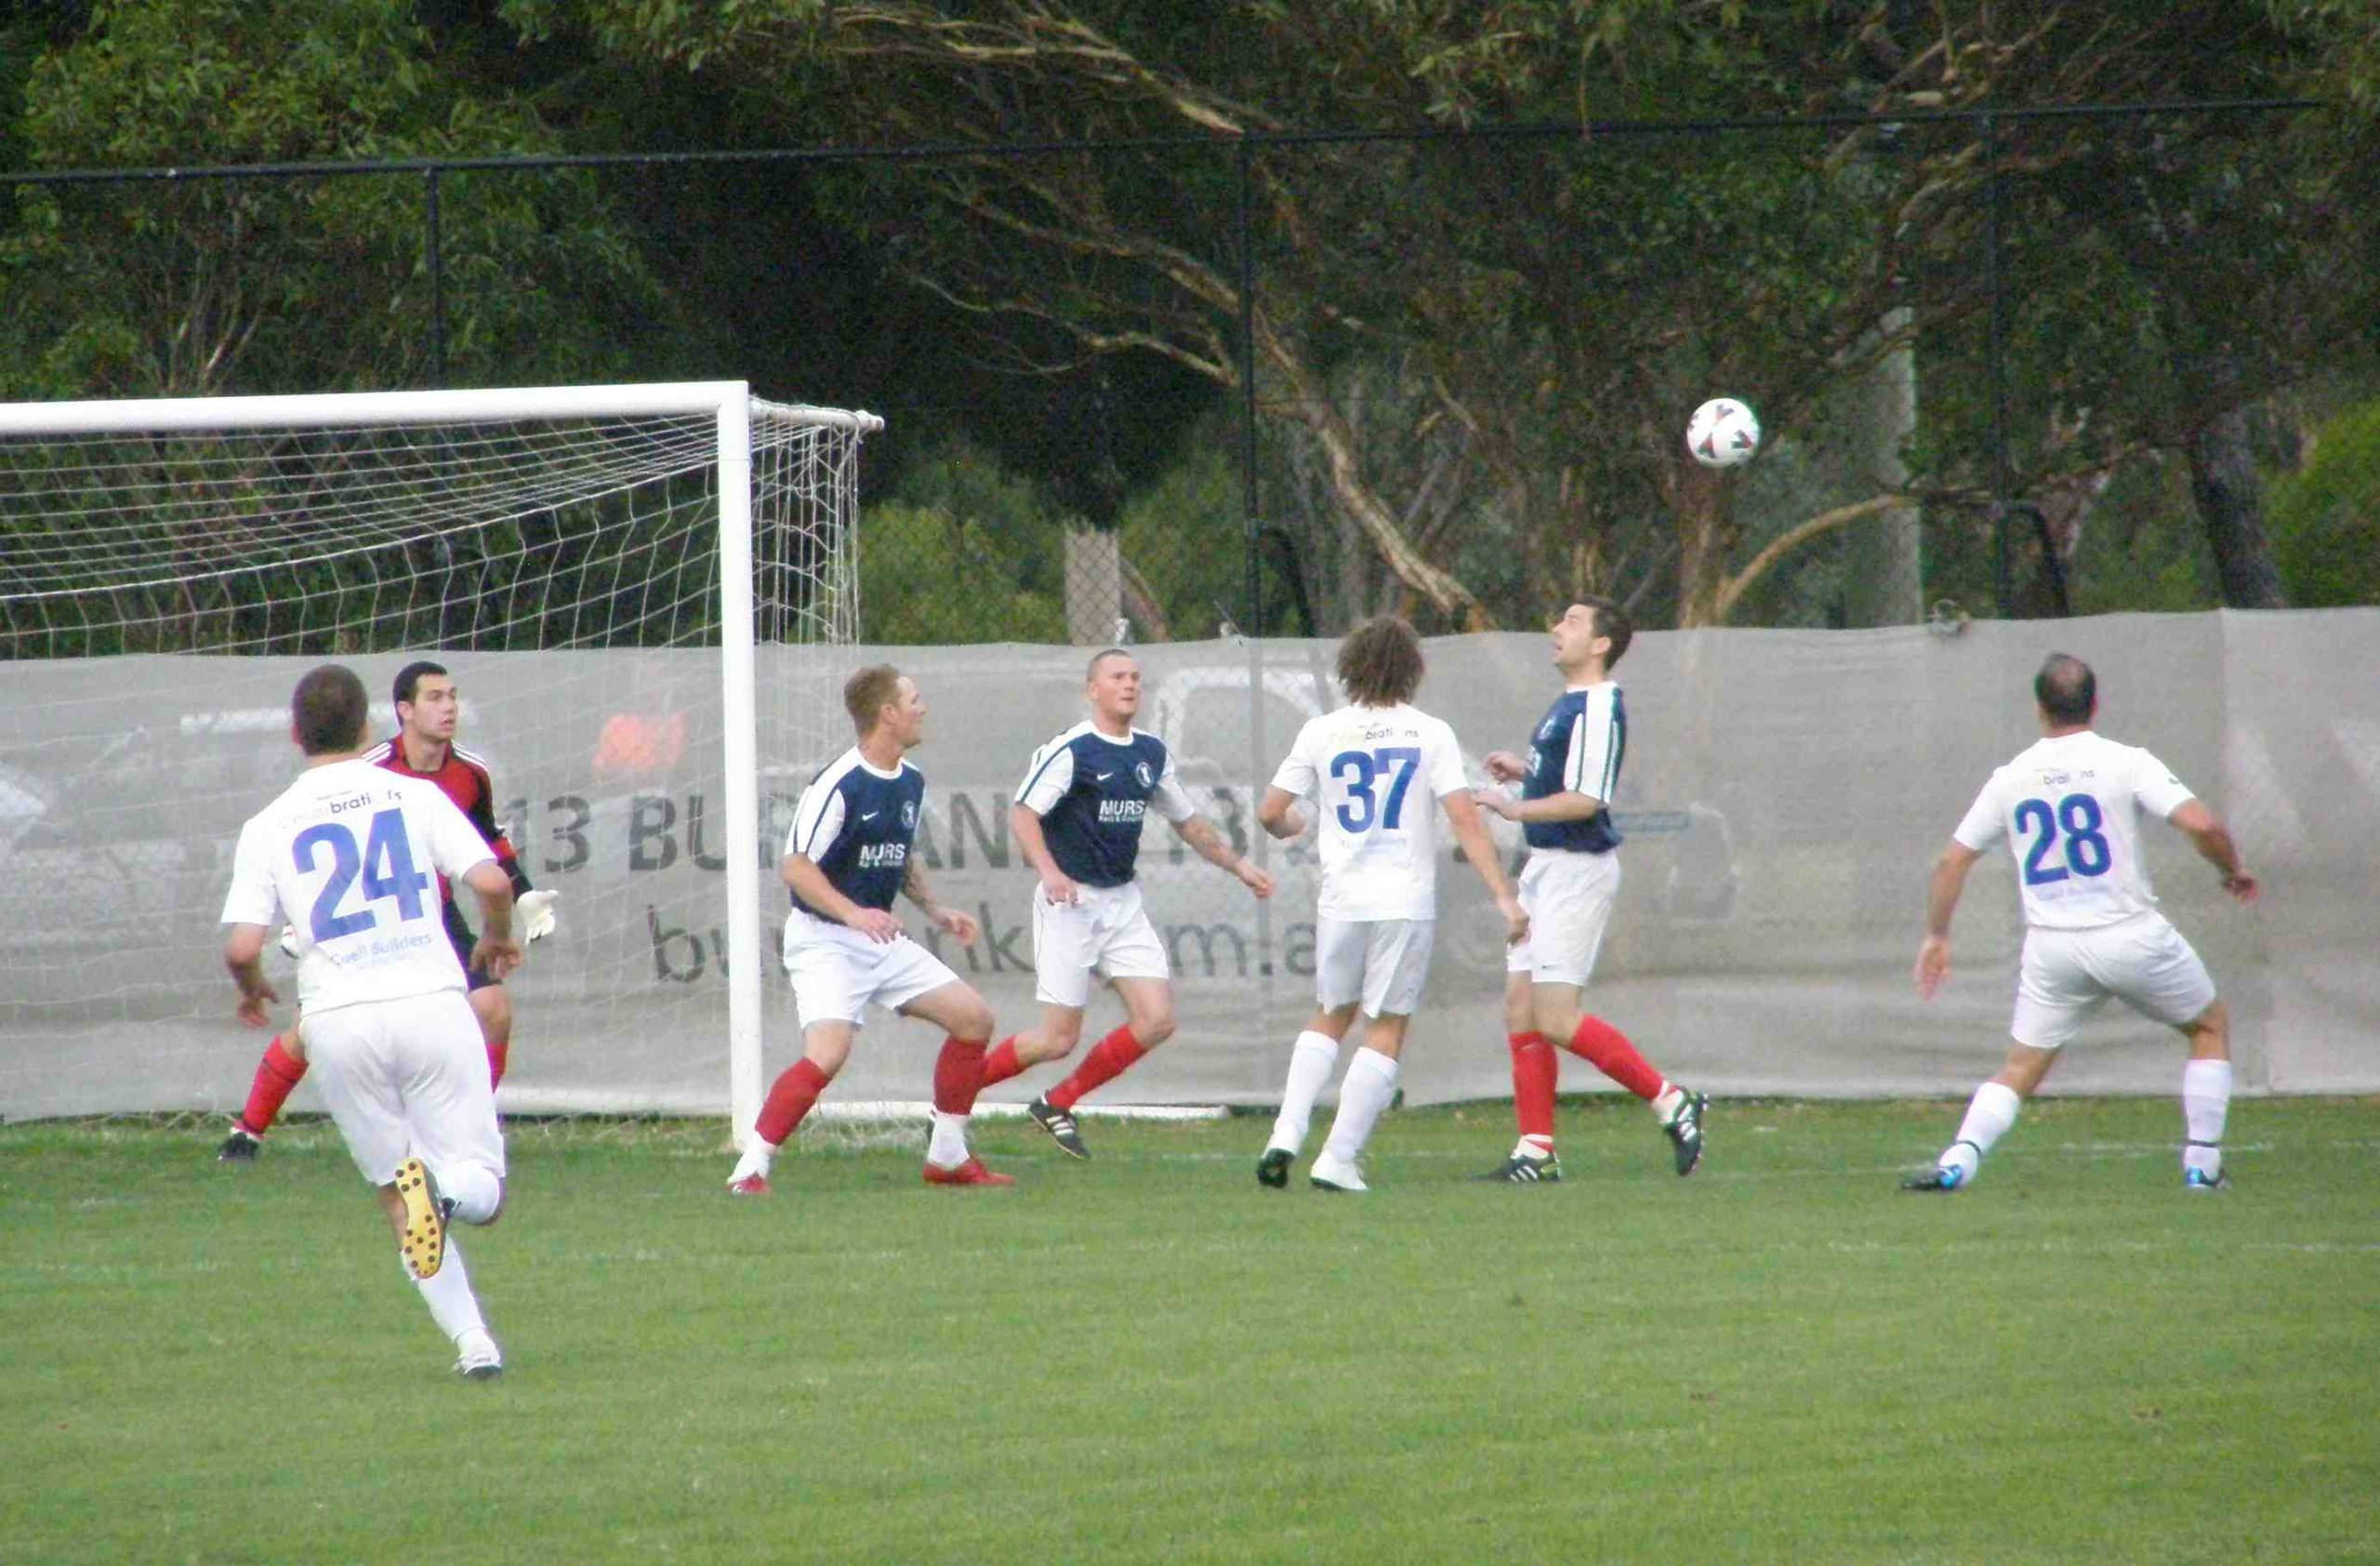 City of Greater Geelong Cup matches decided by late goals